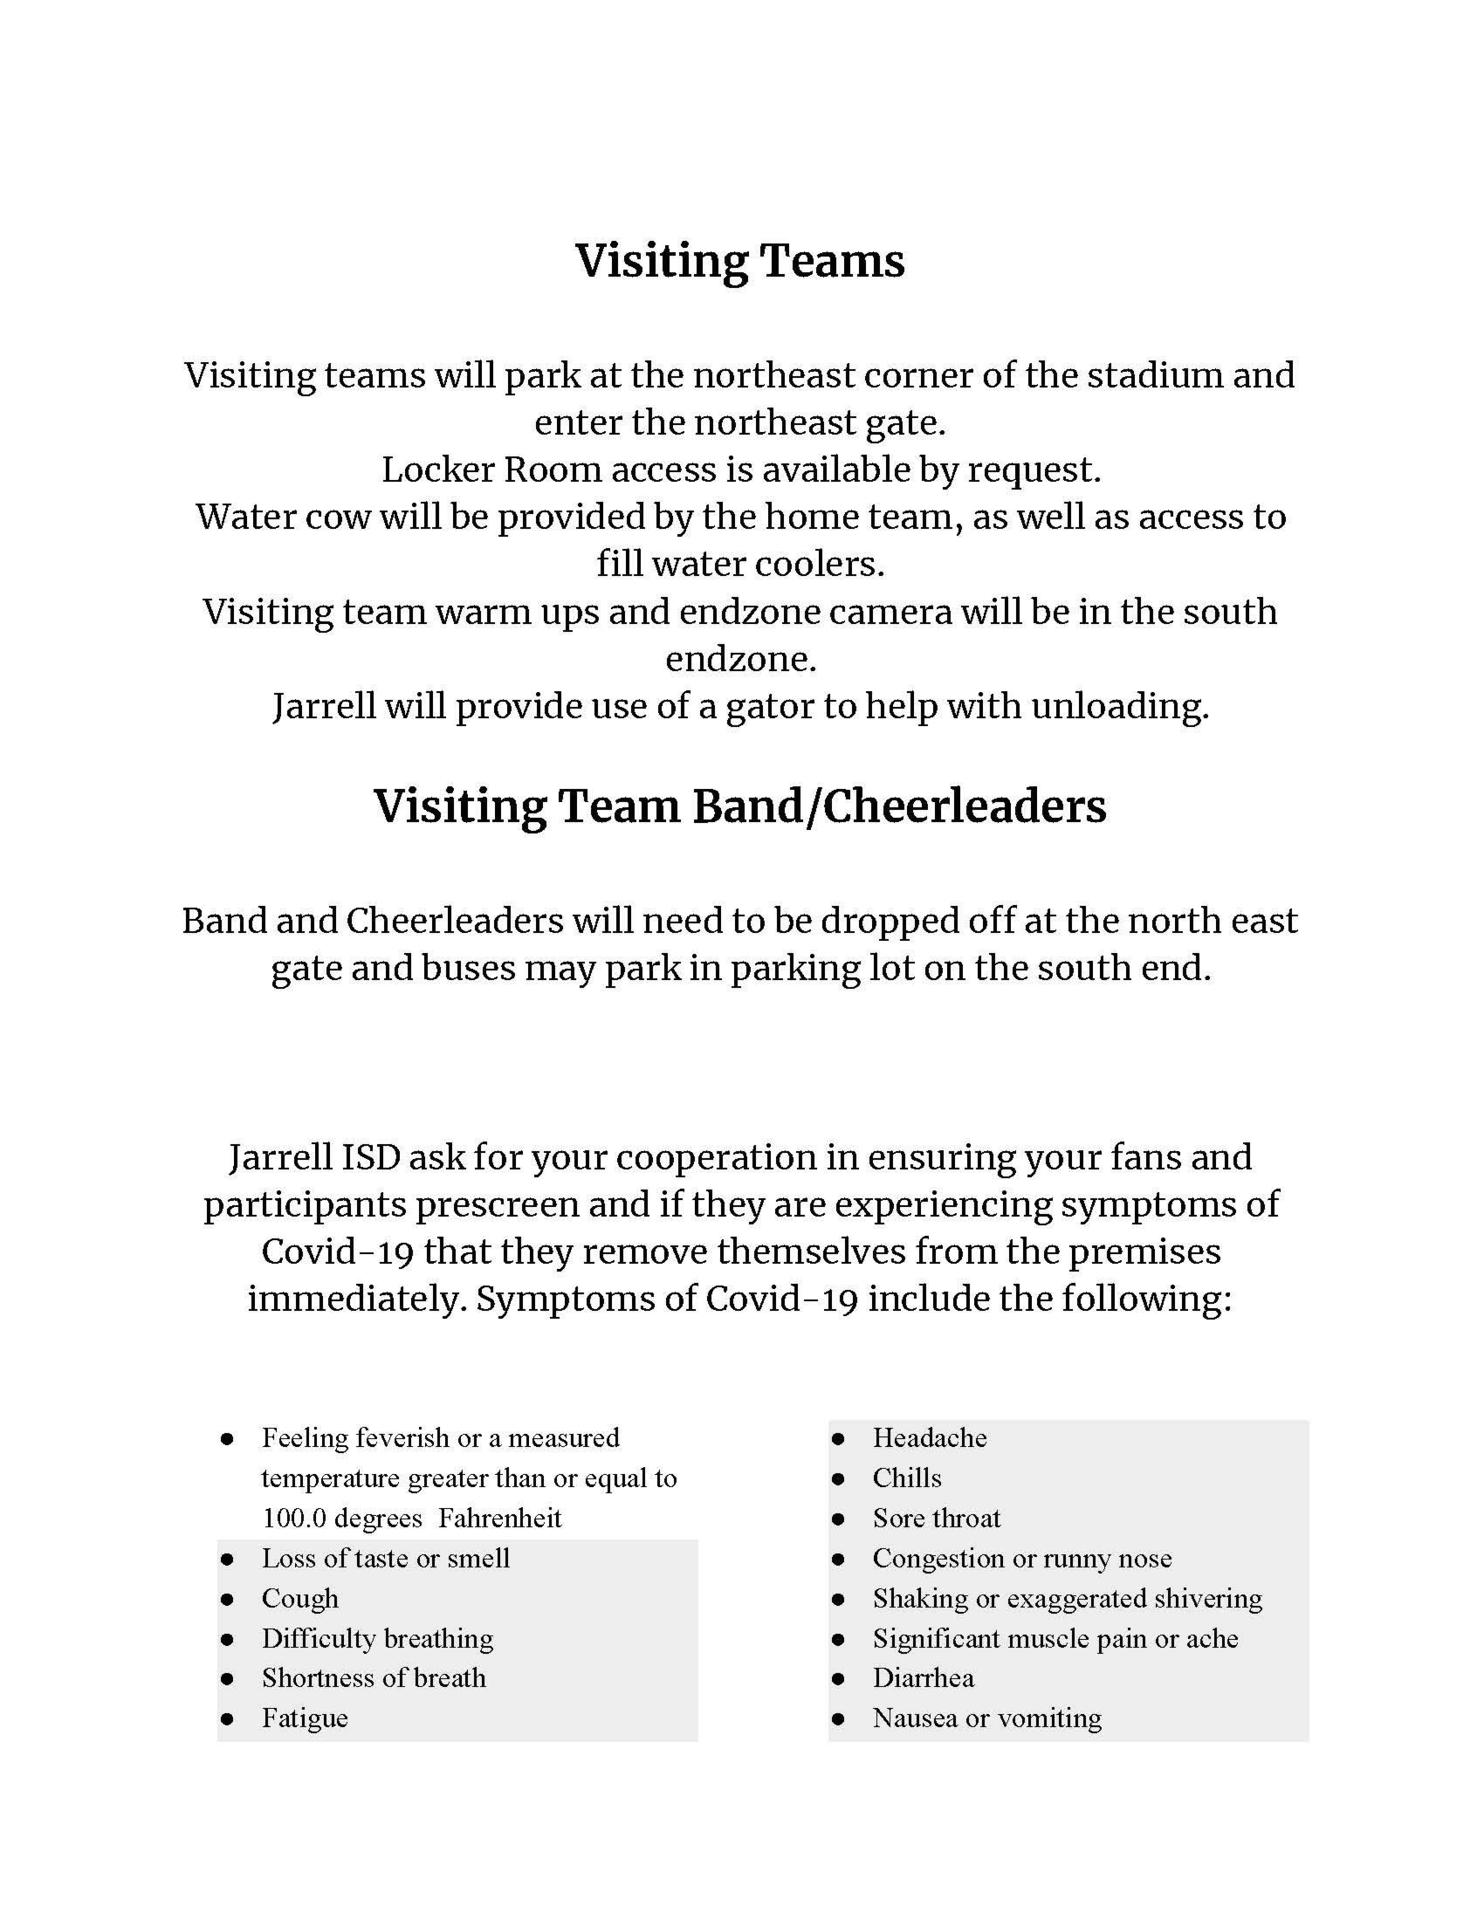 Jarrell Visitor Packet Page 3